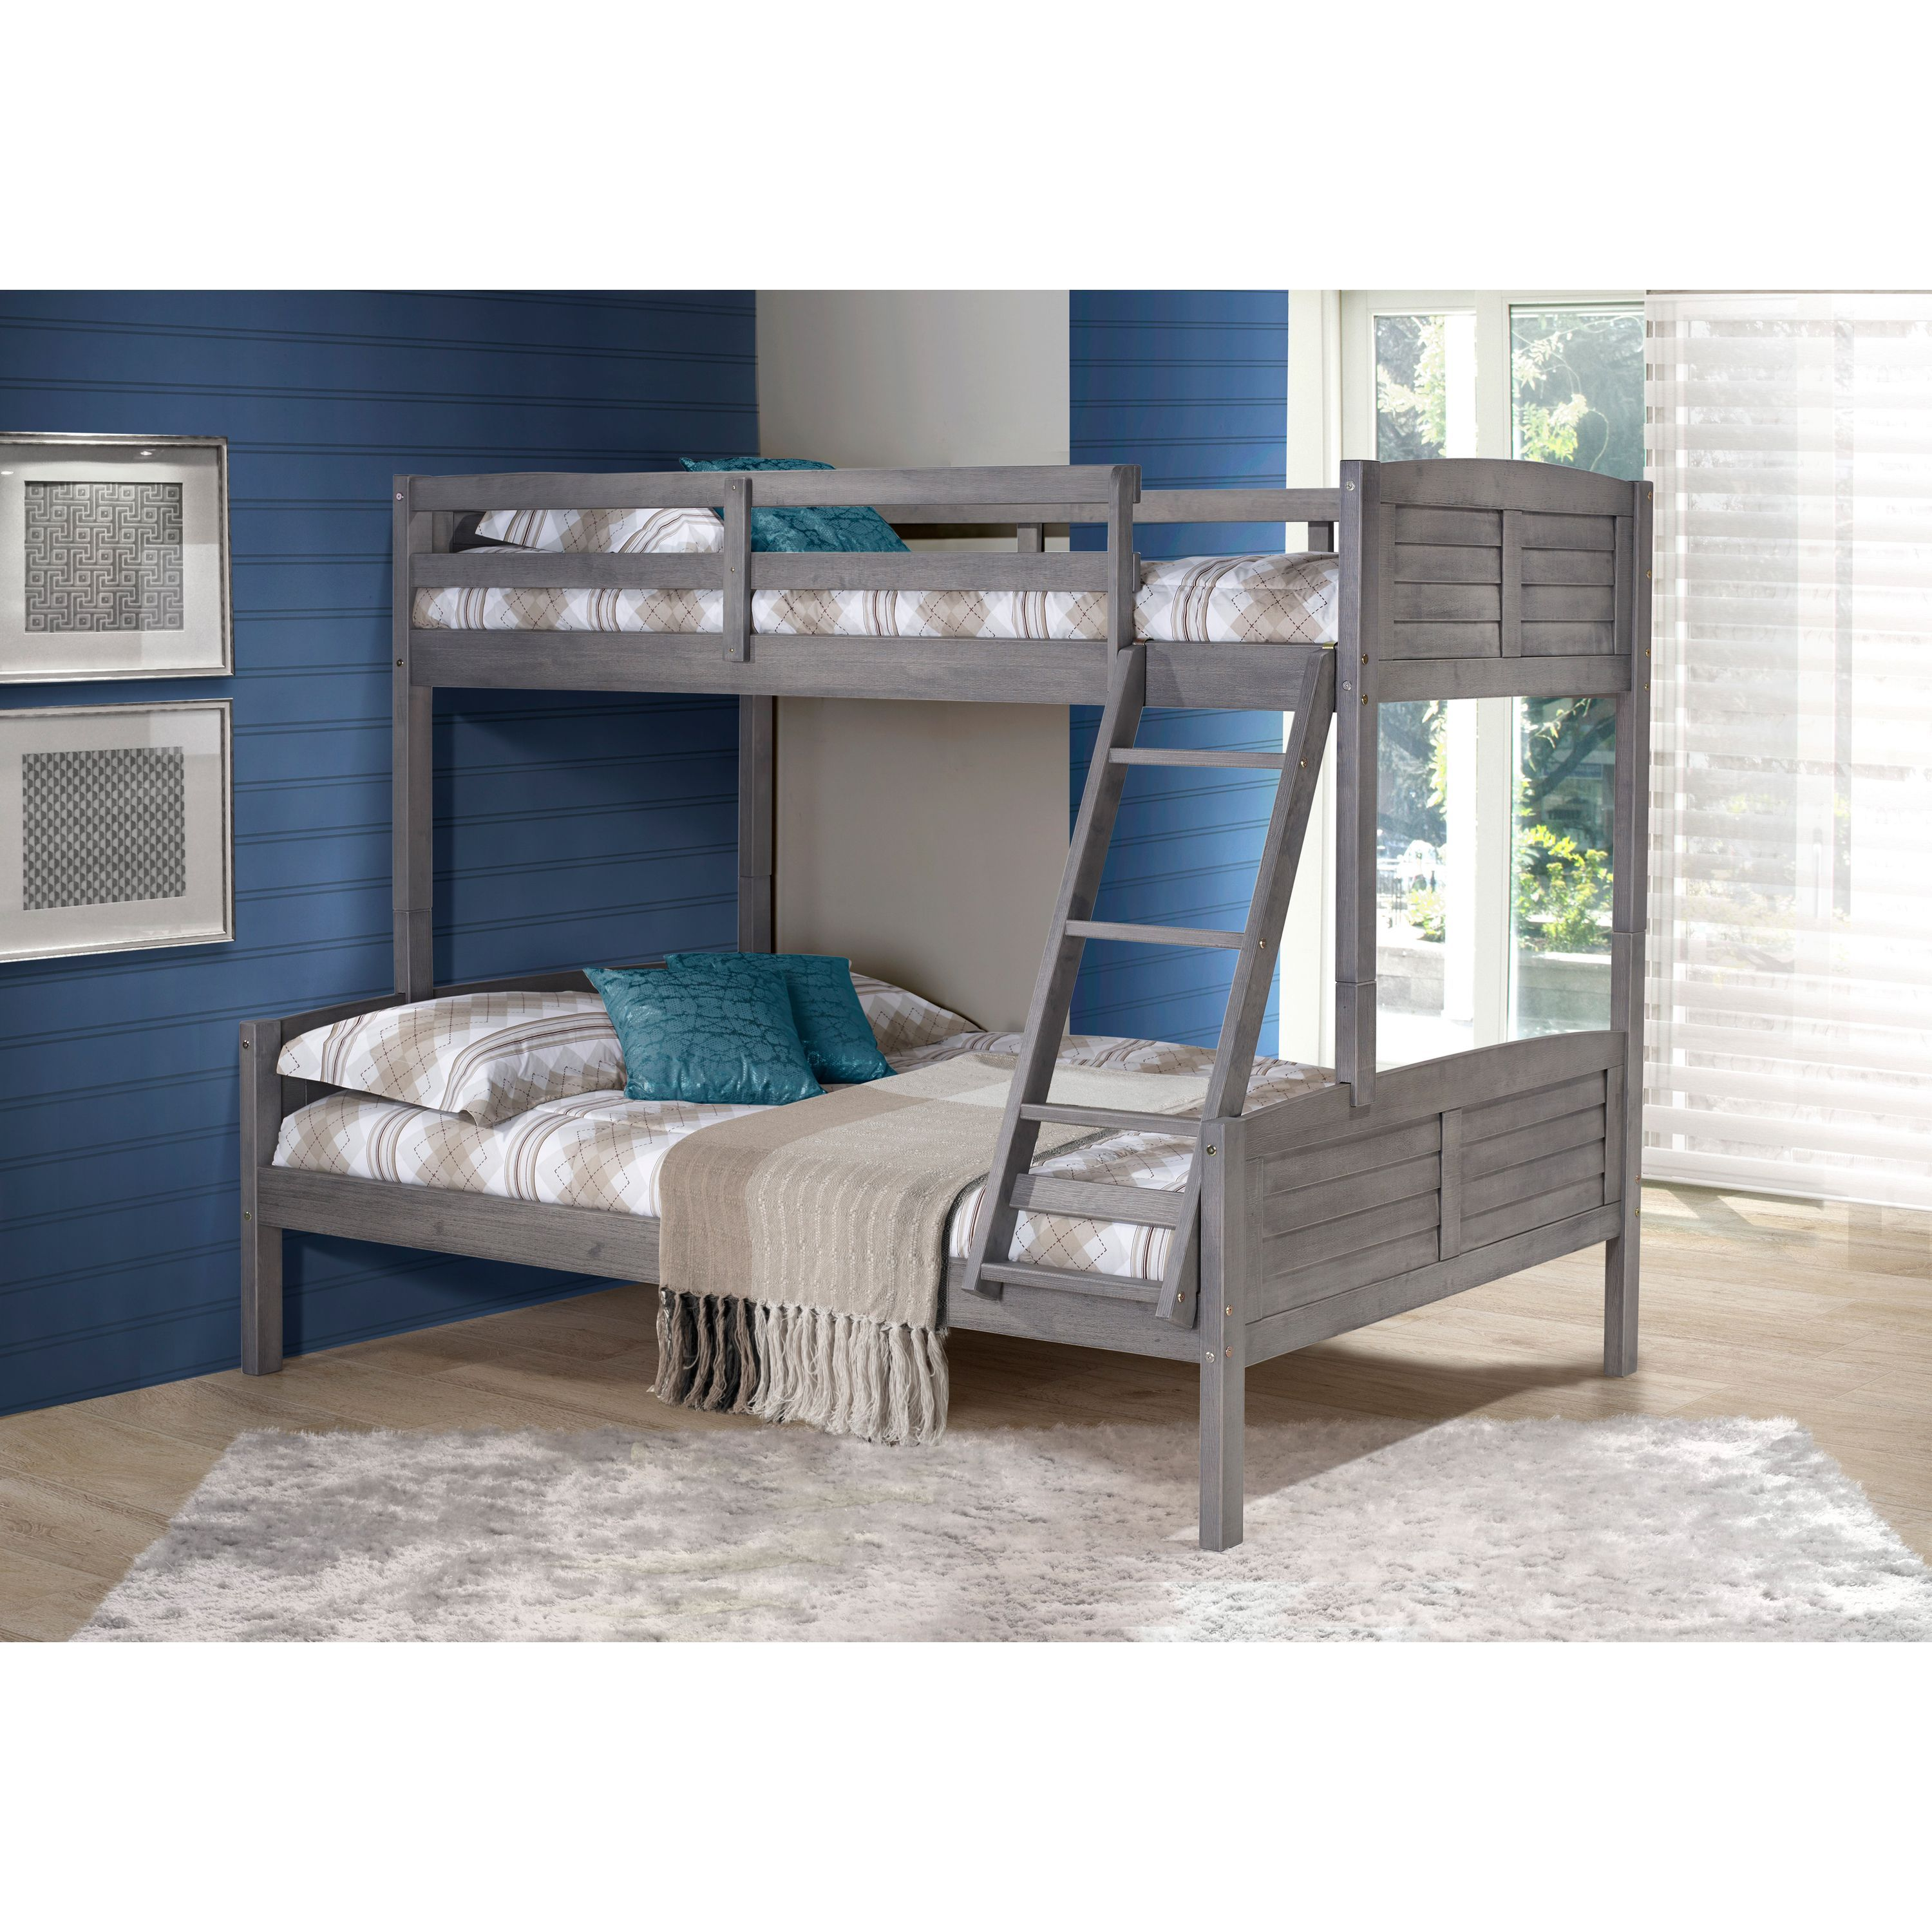 With a full bed on bottom and a twin bed on top this donco louver